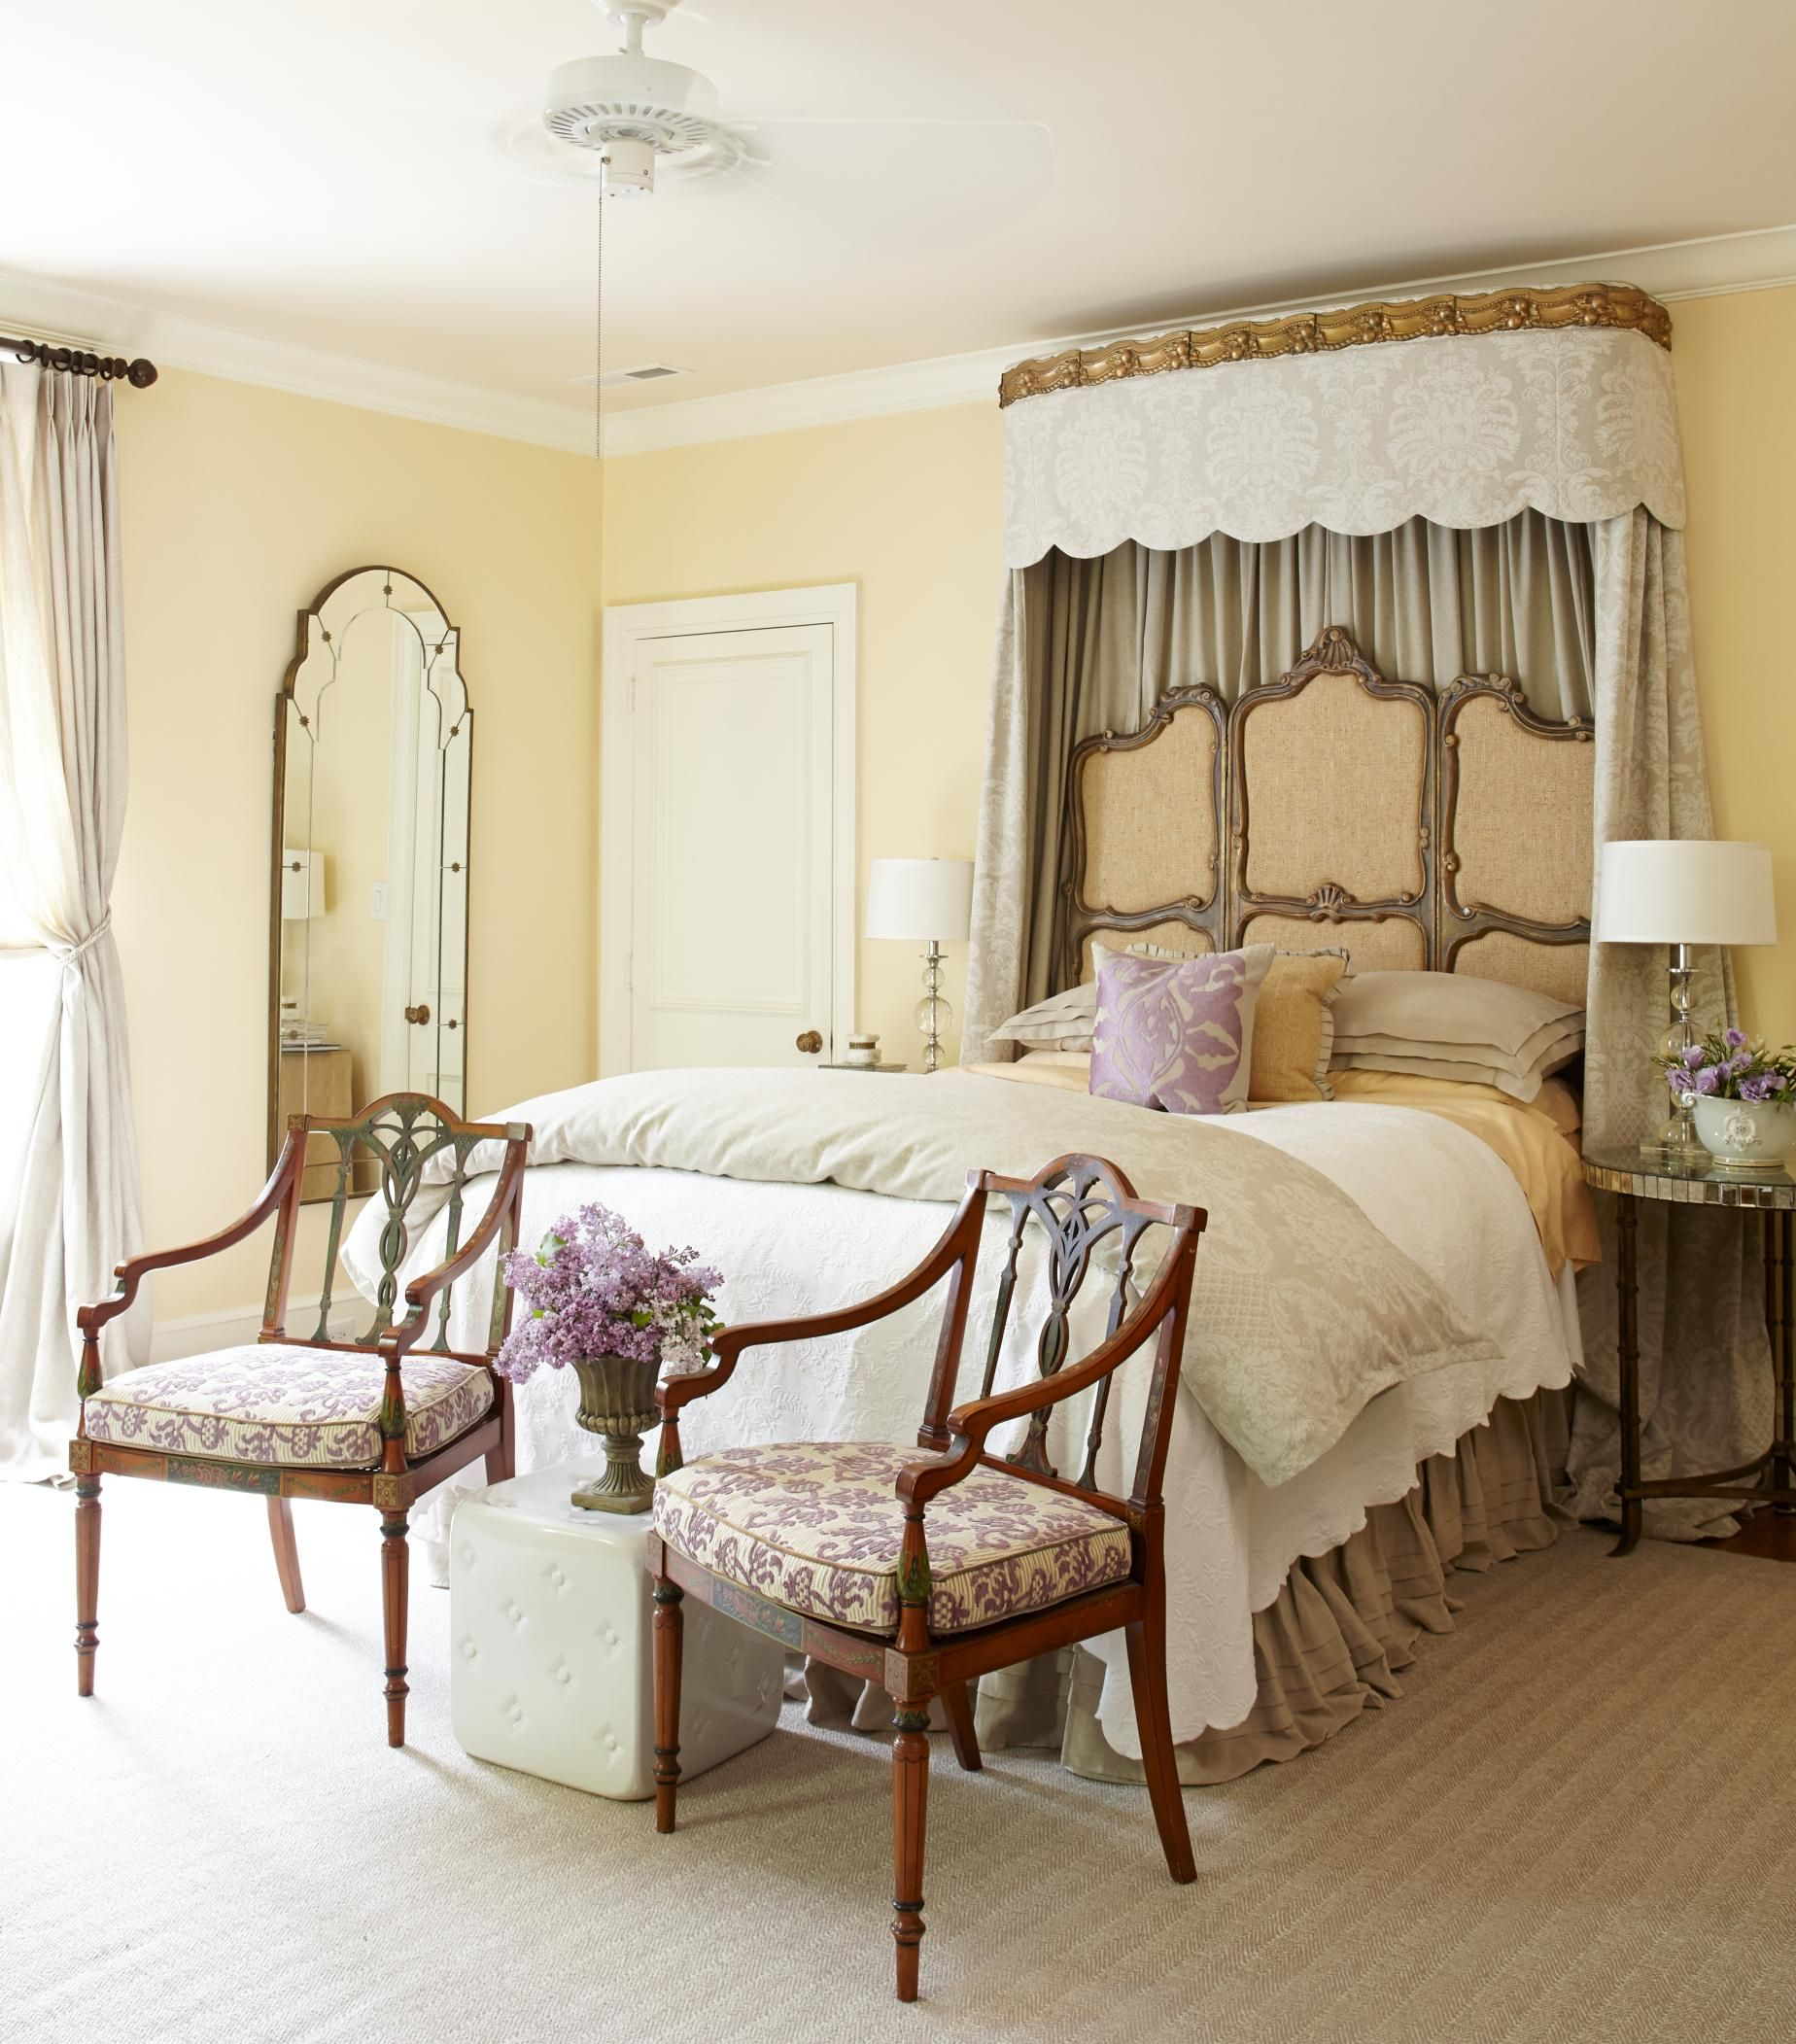 tuft design chic bedroom bedrooms e img trim french